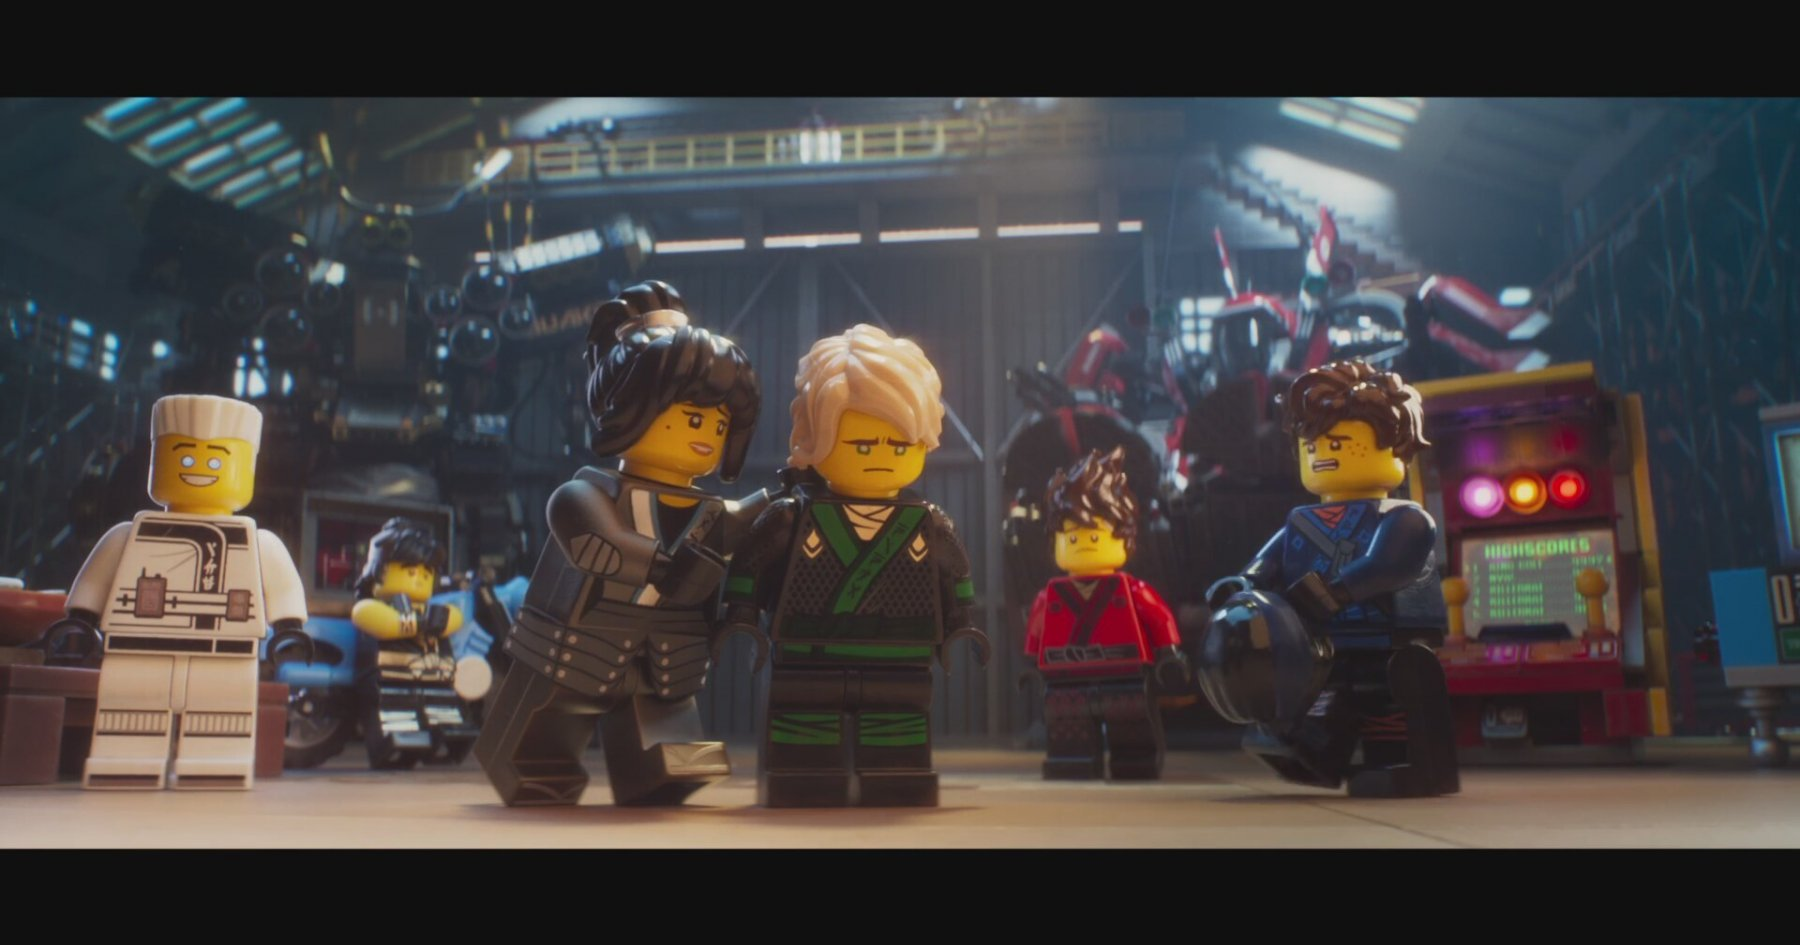 The Lego Ninjago Movie - Fragman (2017) | İzlesene.com